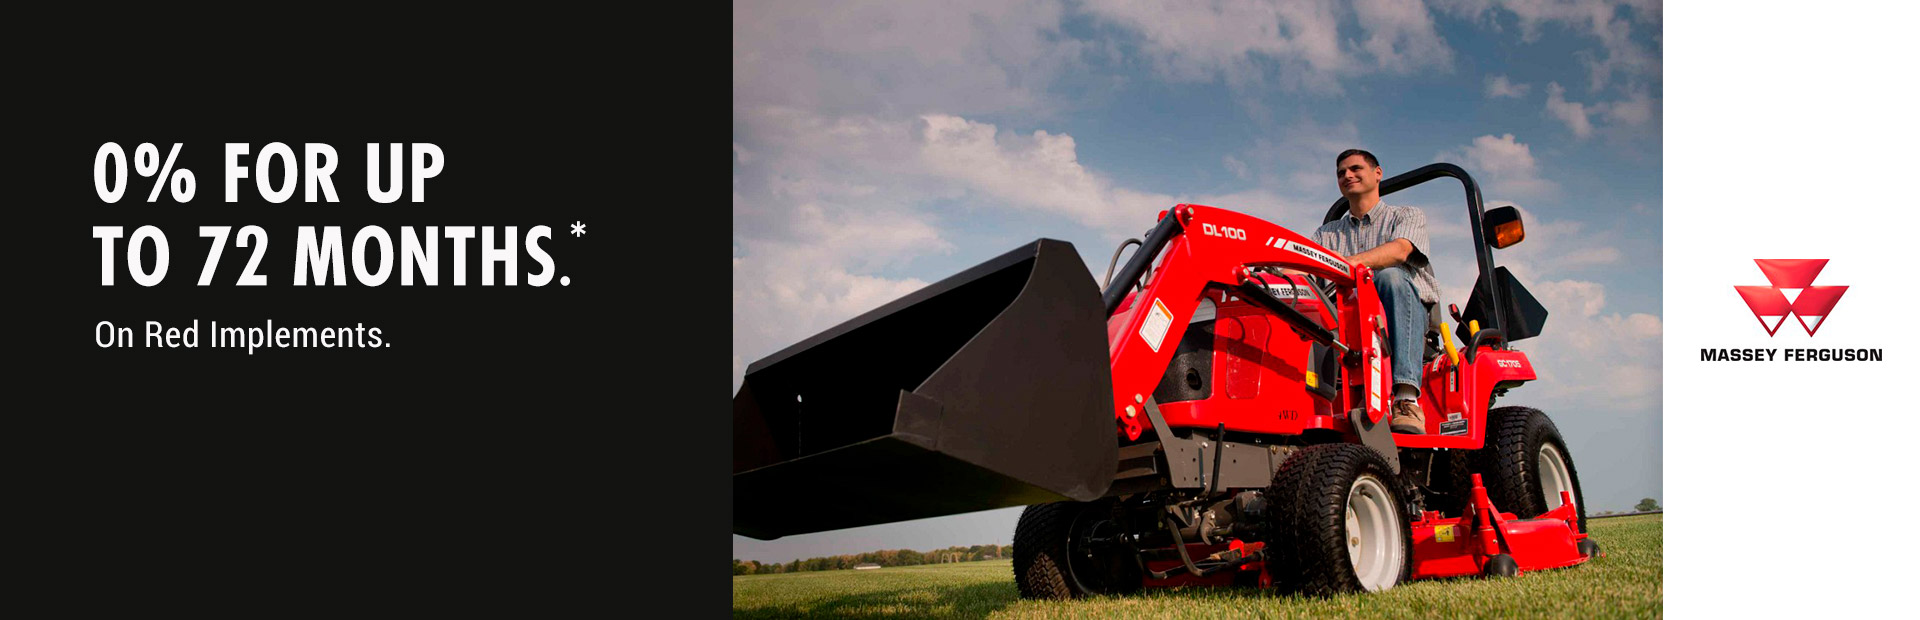 Massey Ferguson: 0% for up to 72 Months on Red Implements